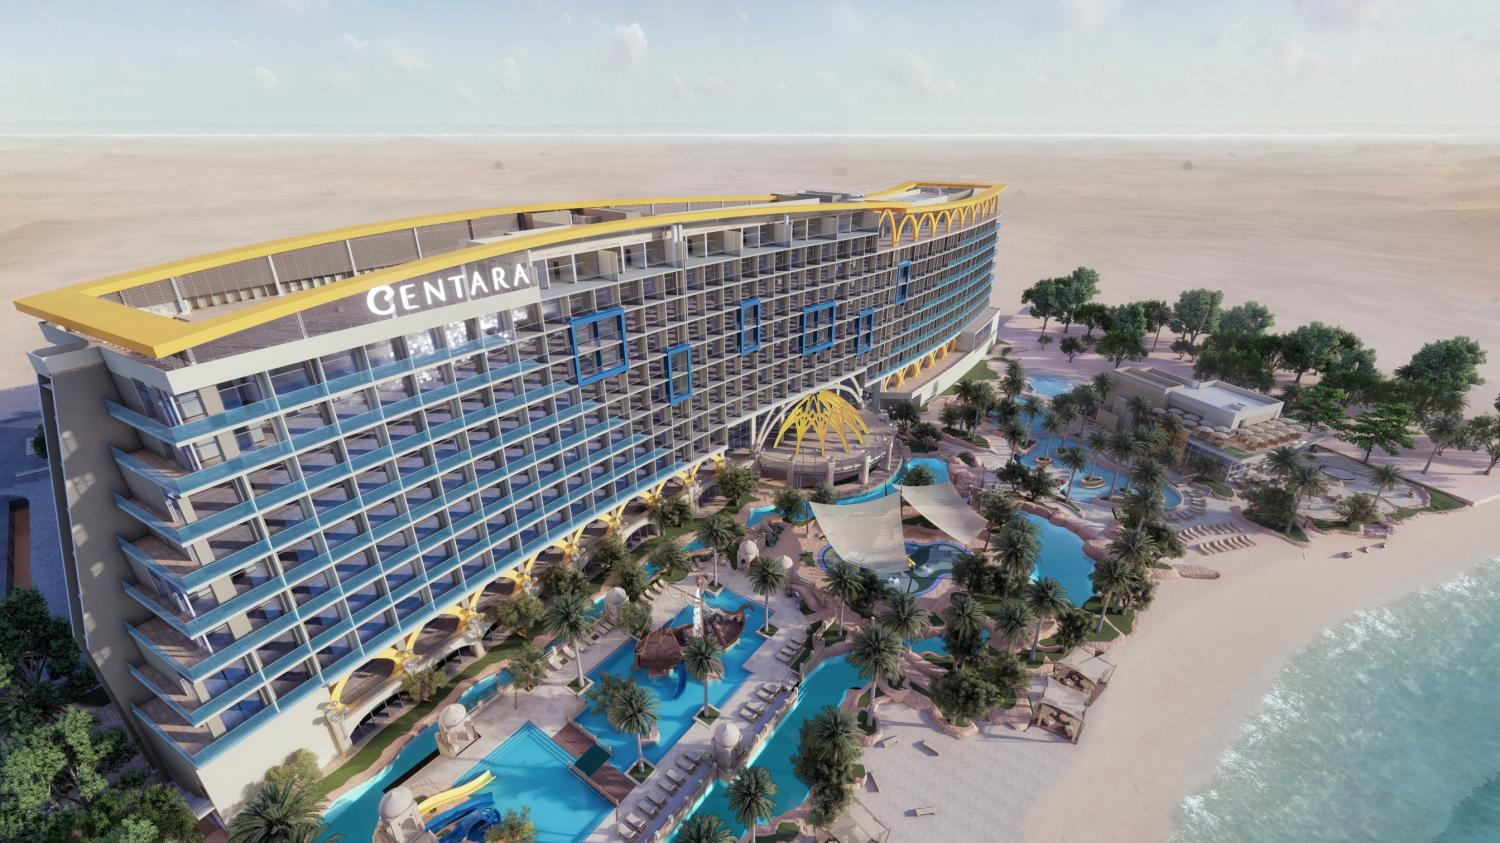 Centara Mirage Beach Resort Dubai will be the group's first property in the United Arab Emirates and its third Centara Mirage property after Thailand and Vietnam.